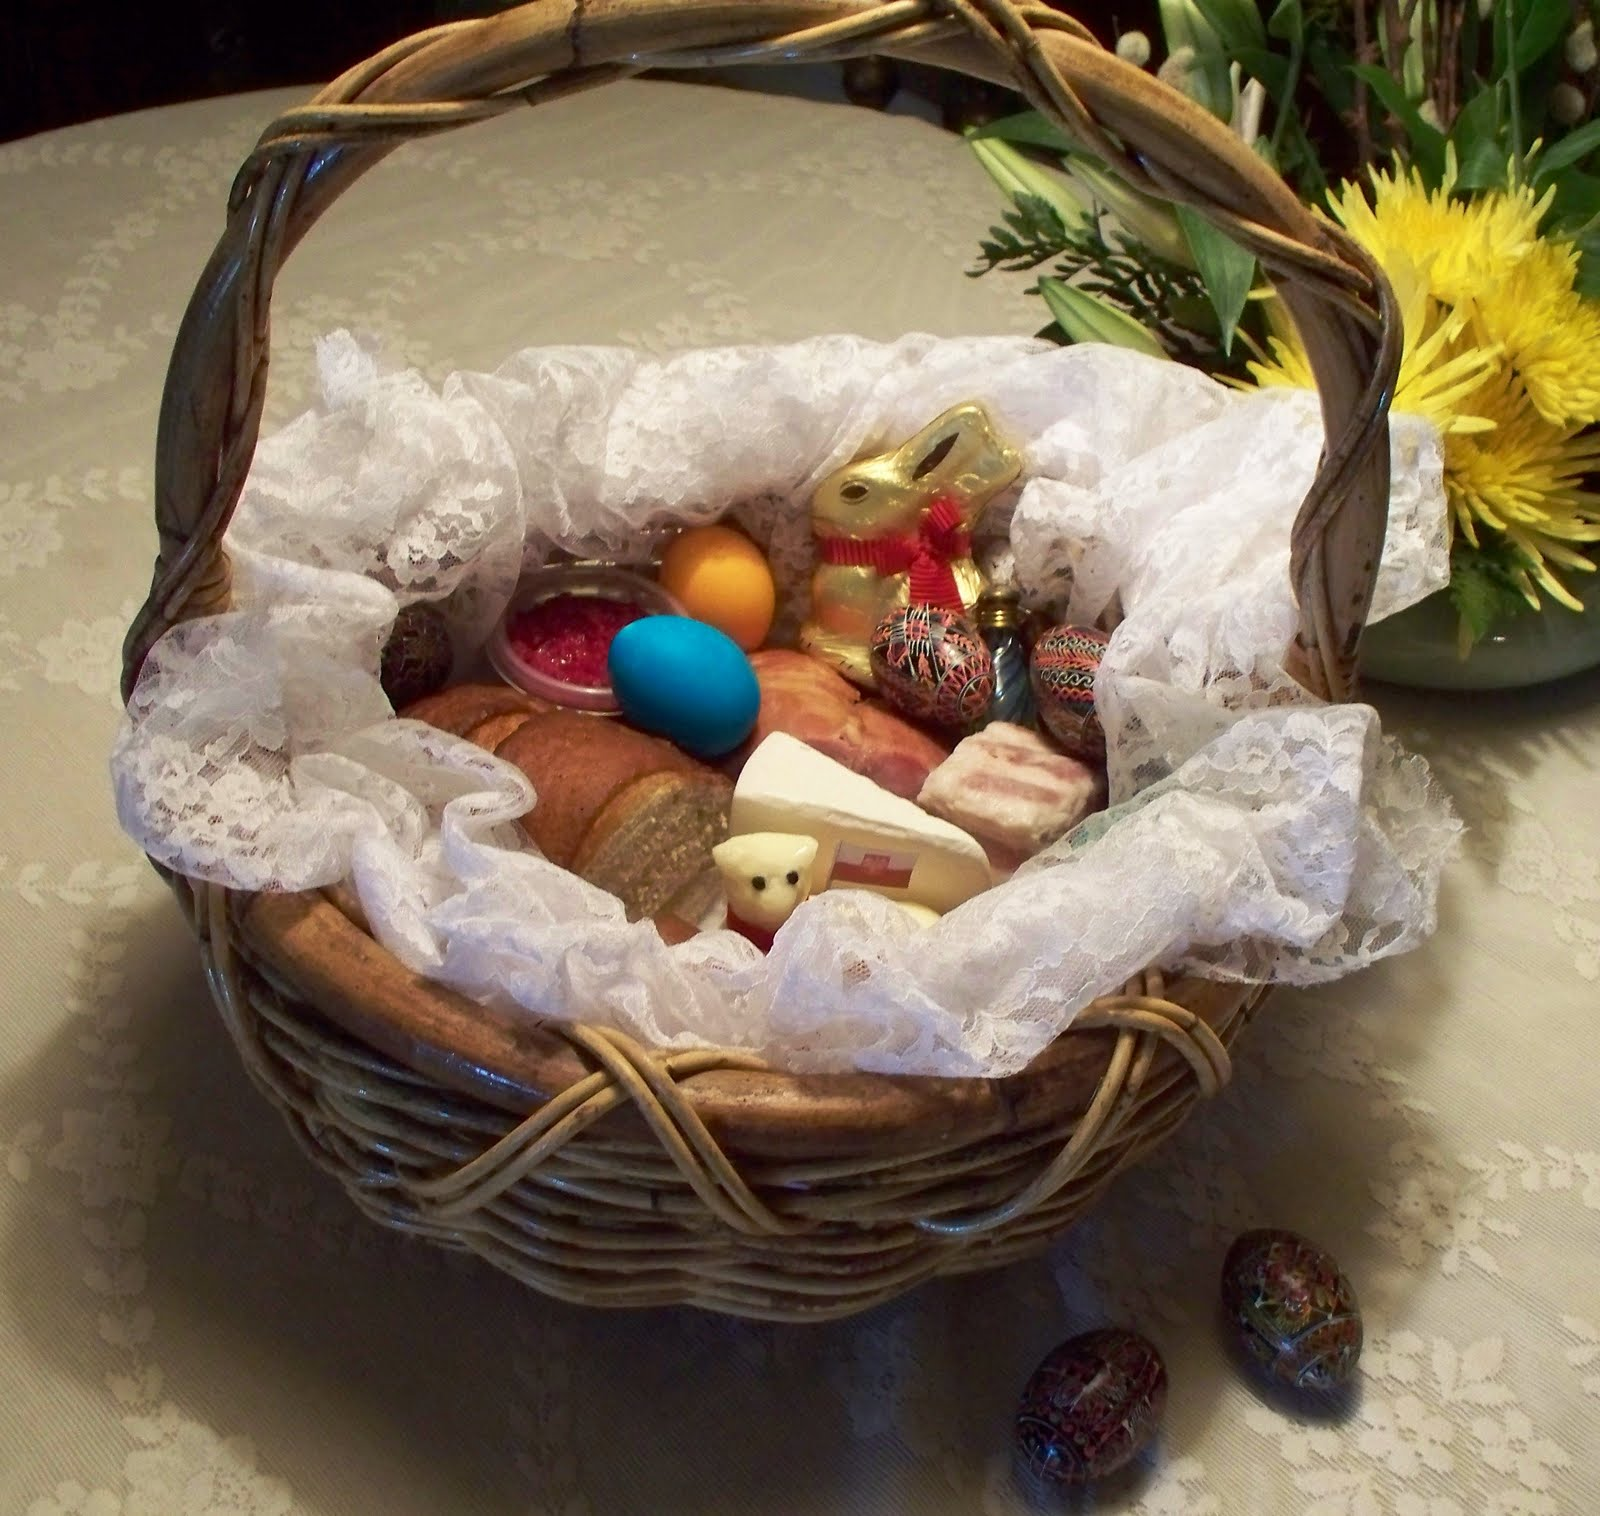 From My Family's Polish Kitchen: Polish Easter Basket Blessing